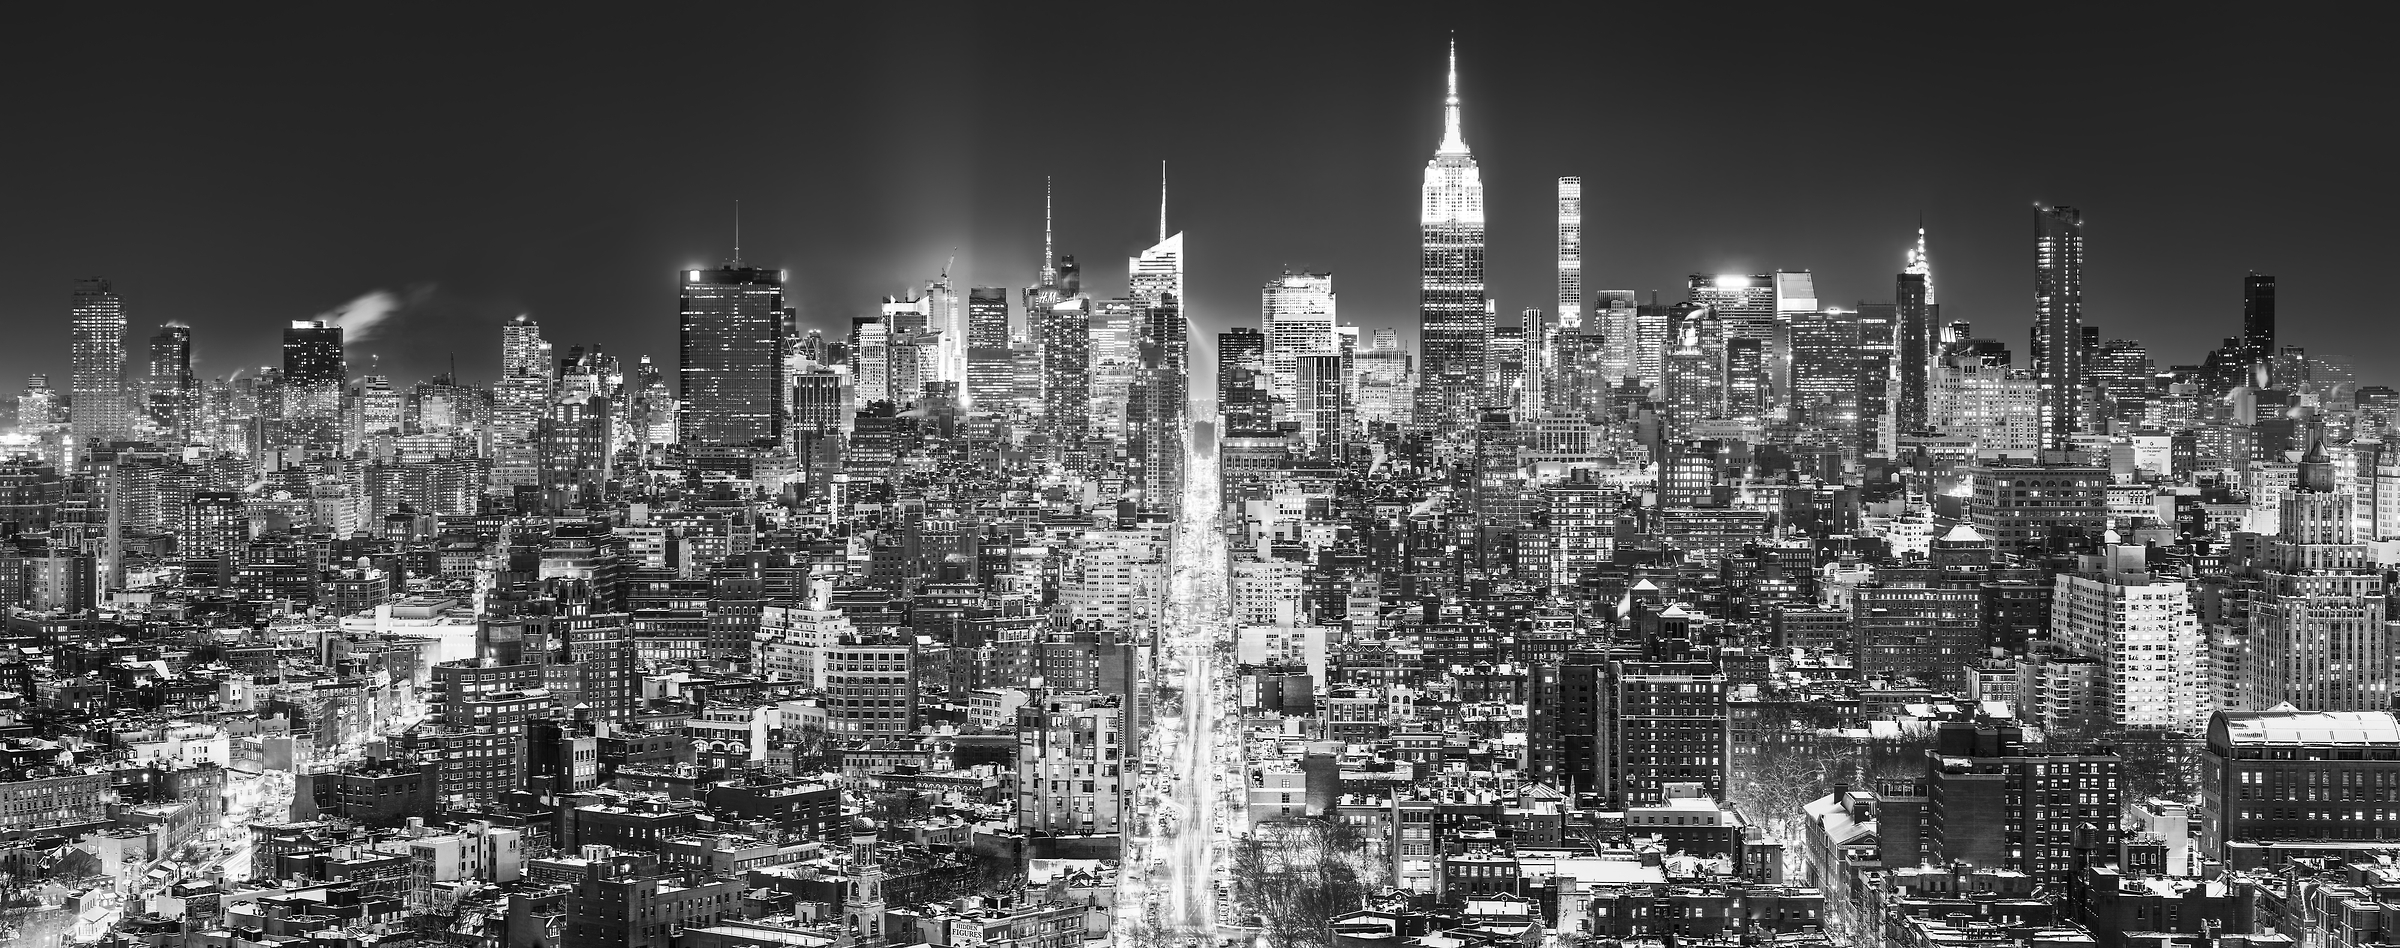 2,002 megapixels! A very high resolution, large-format VAST photo print of the Manhattan NYC skyline in winter snow at night; black and white cityscape fine art photo created by Dan Piech in New York City